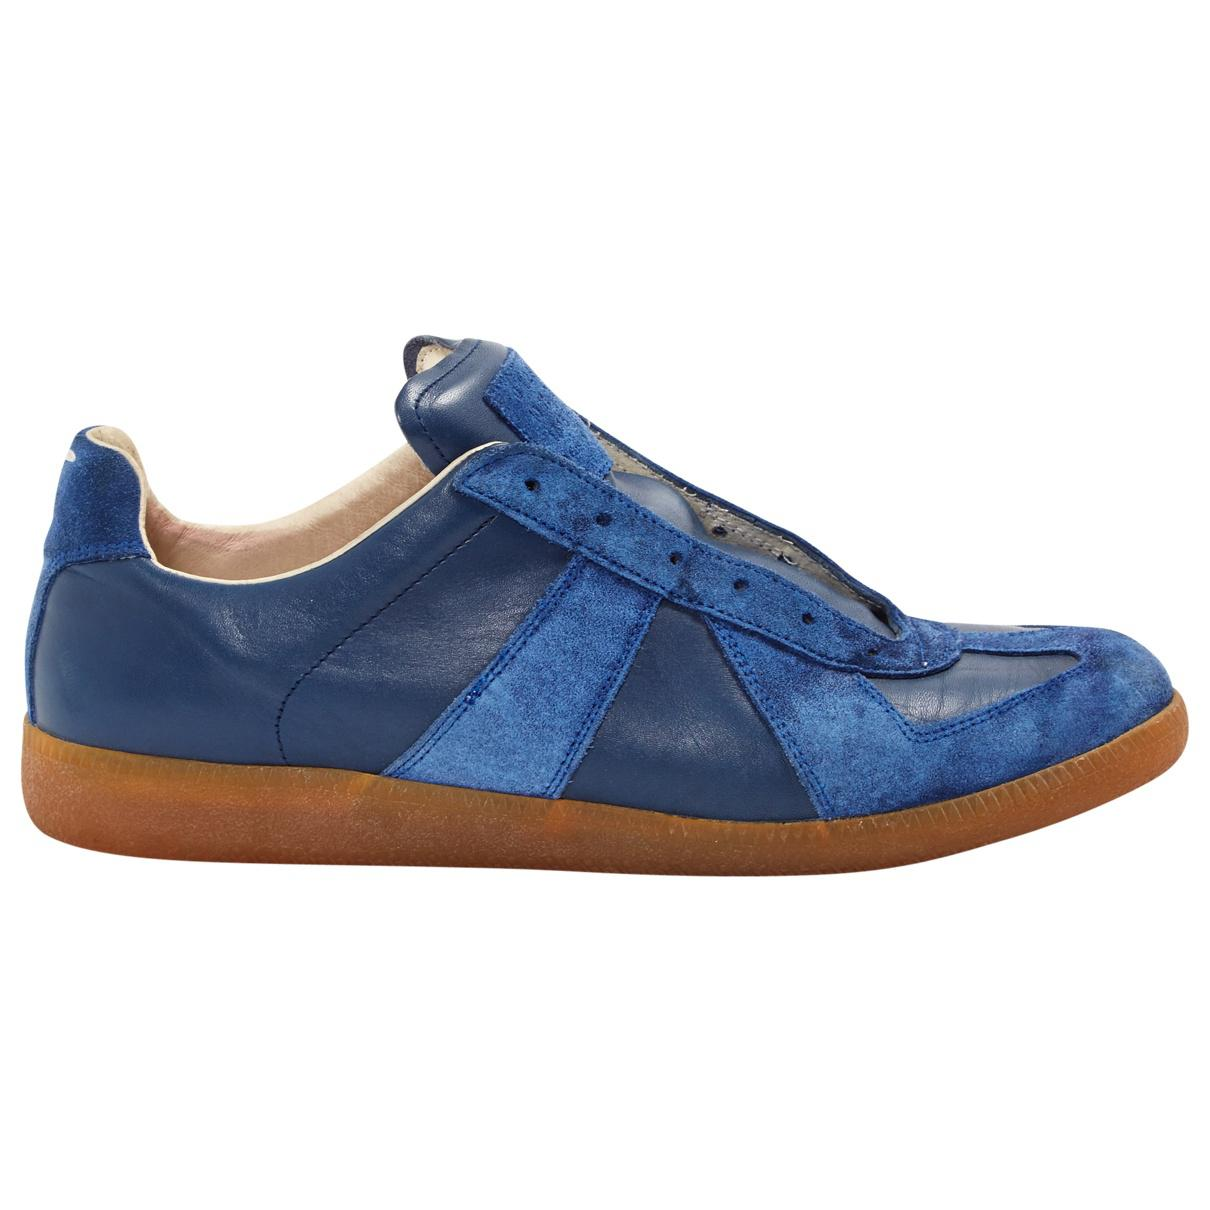 Pre-owned - Leather low trainers Maison Martin Margiela 7g9tYj